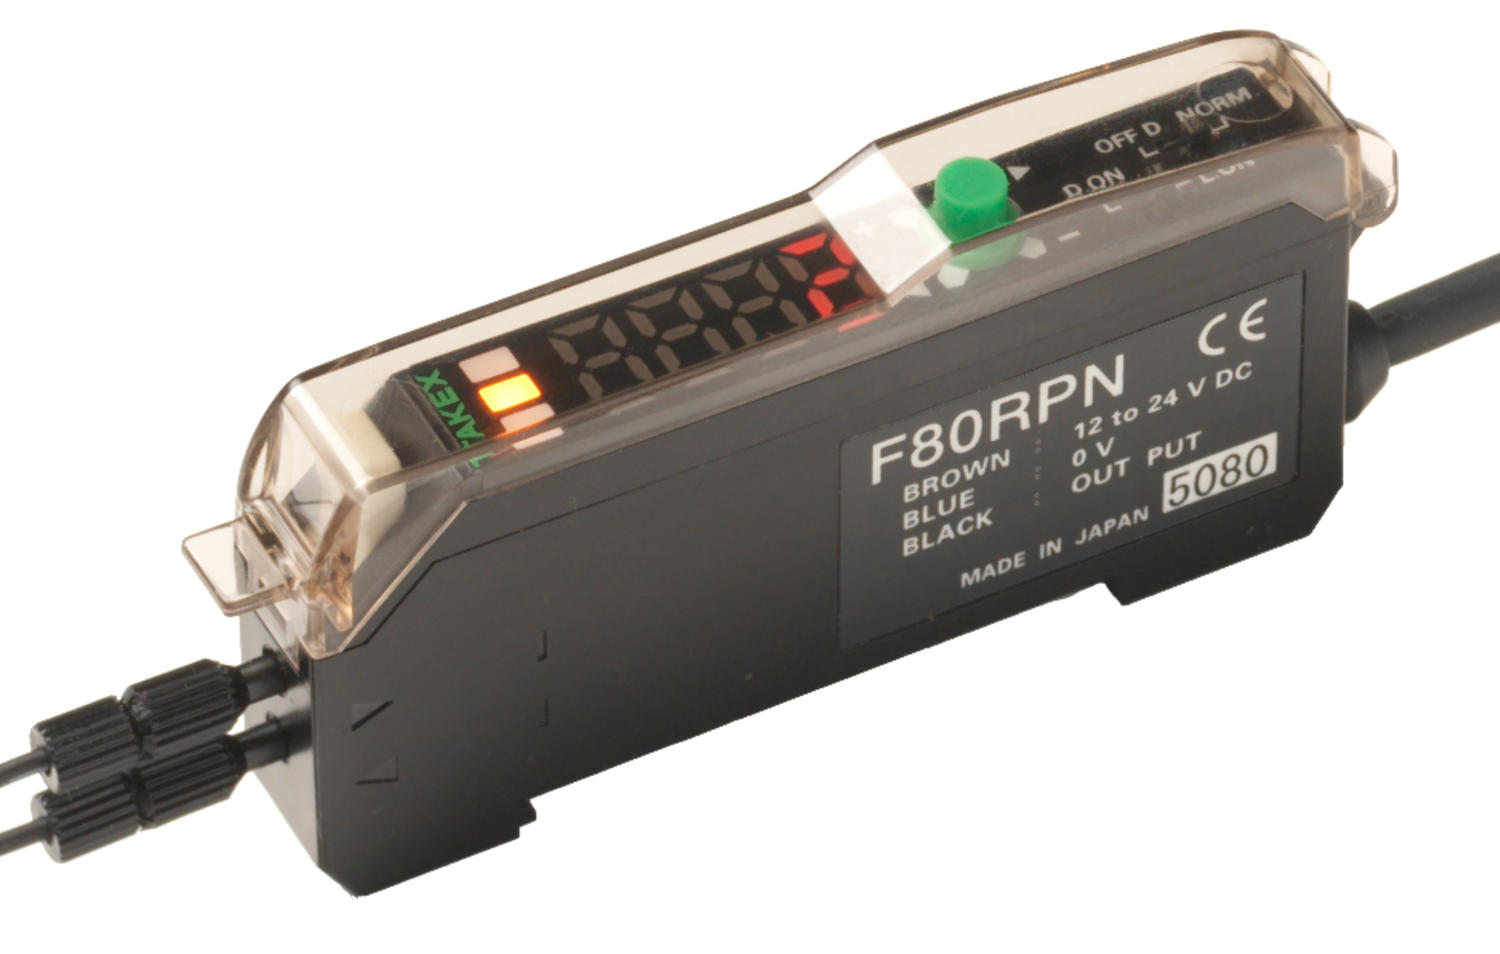 F80 Fibre Amplifier with large digital display and long distances